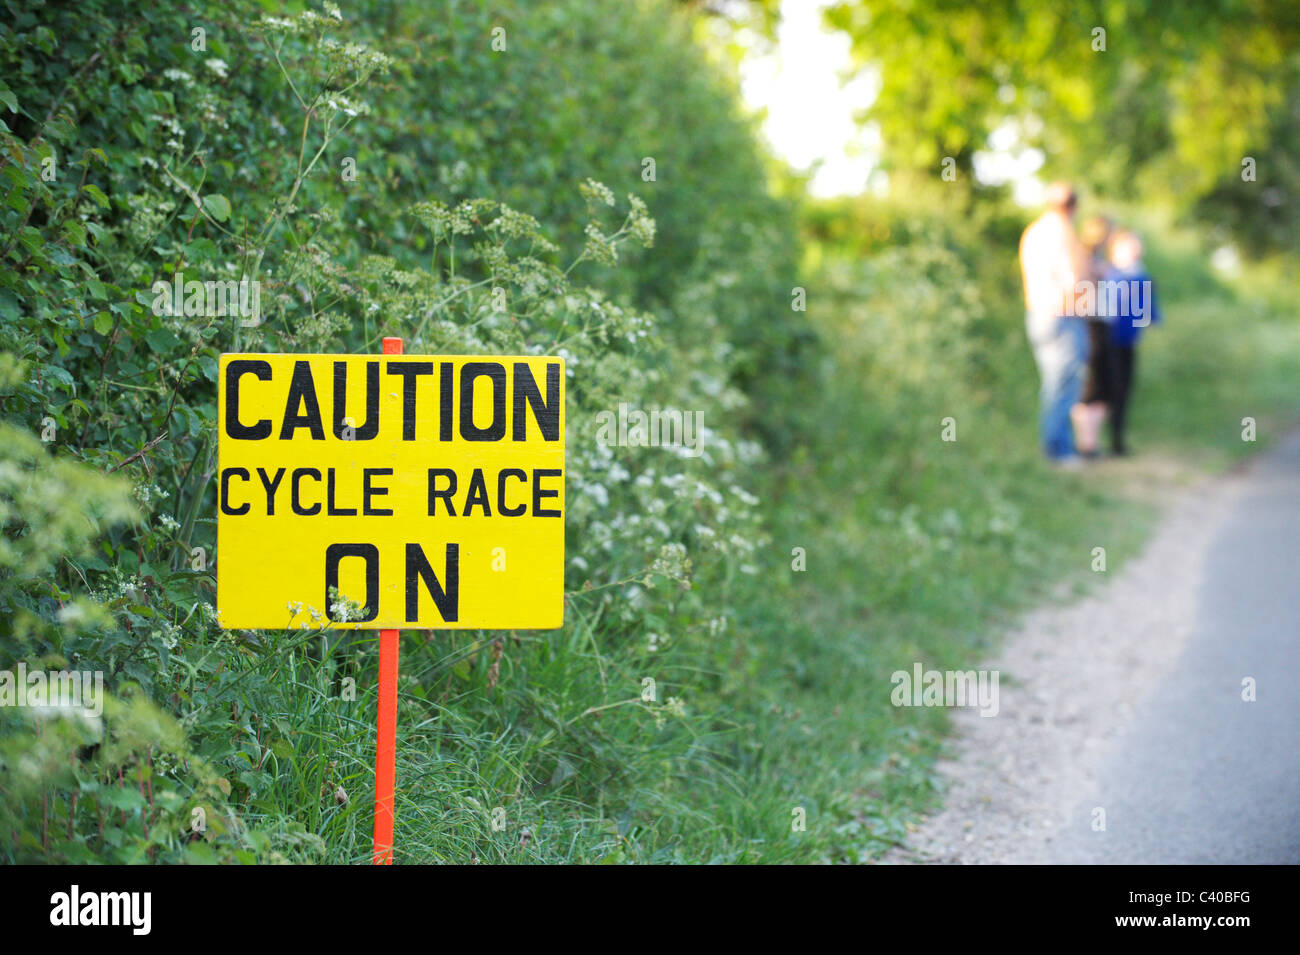 Caution Cycle Race On - sign in British country lane for amateur cycling race - Stock Image